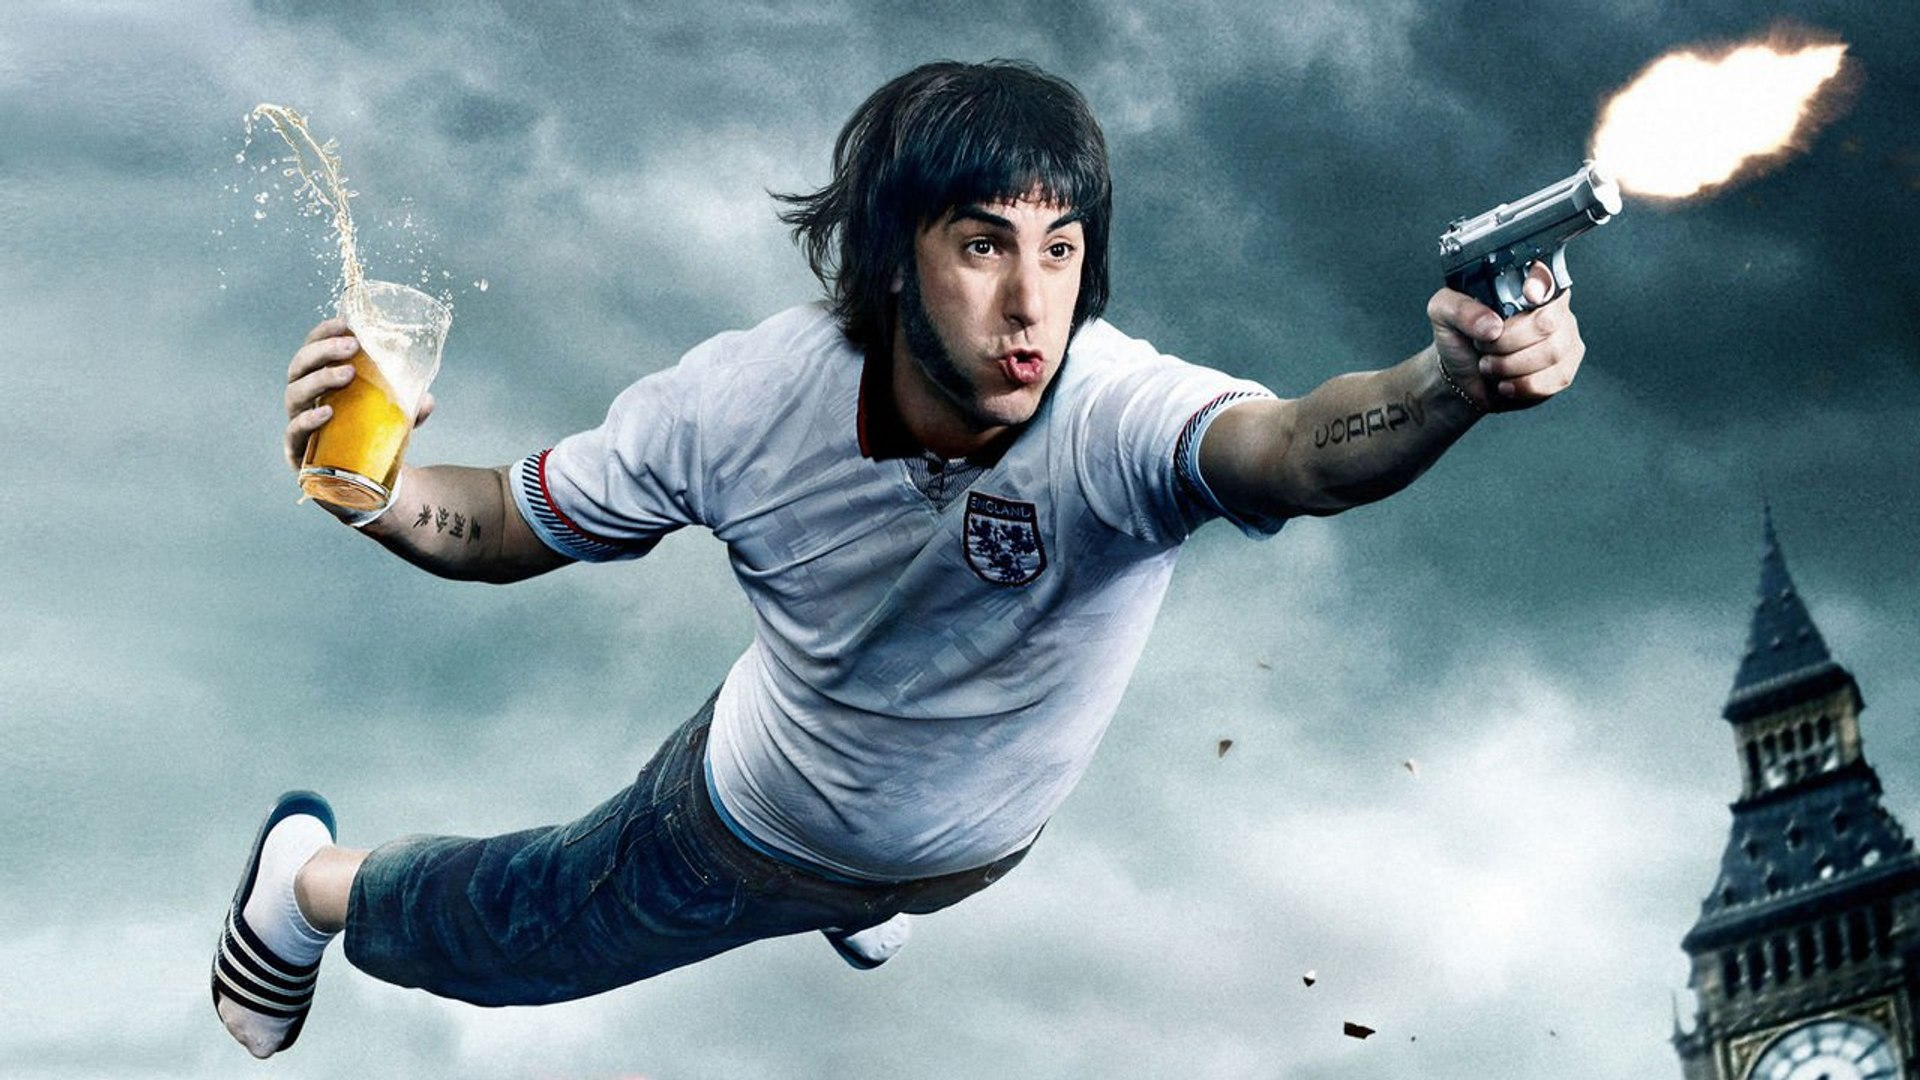 ♥★© Watch Comedy Movie - Grimsby (2016) [HD] 720p Movie Online Free ≈ HD Movie Online